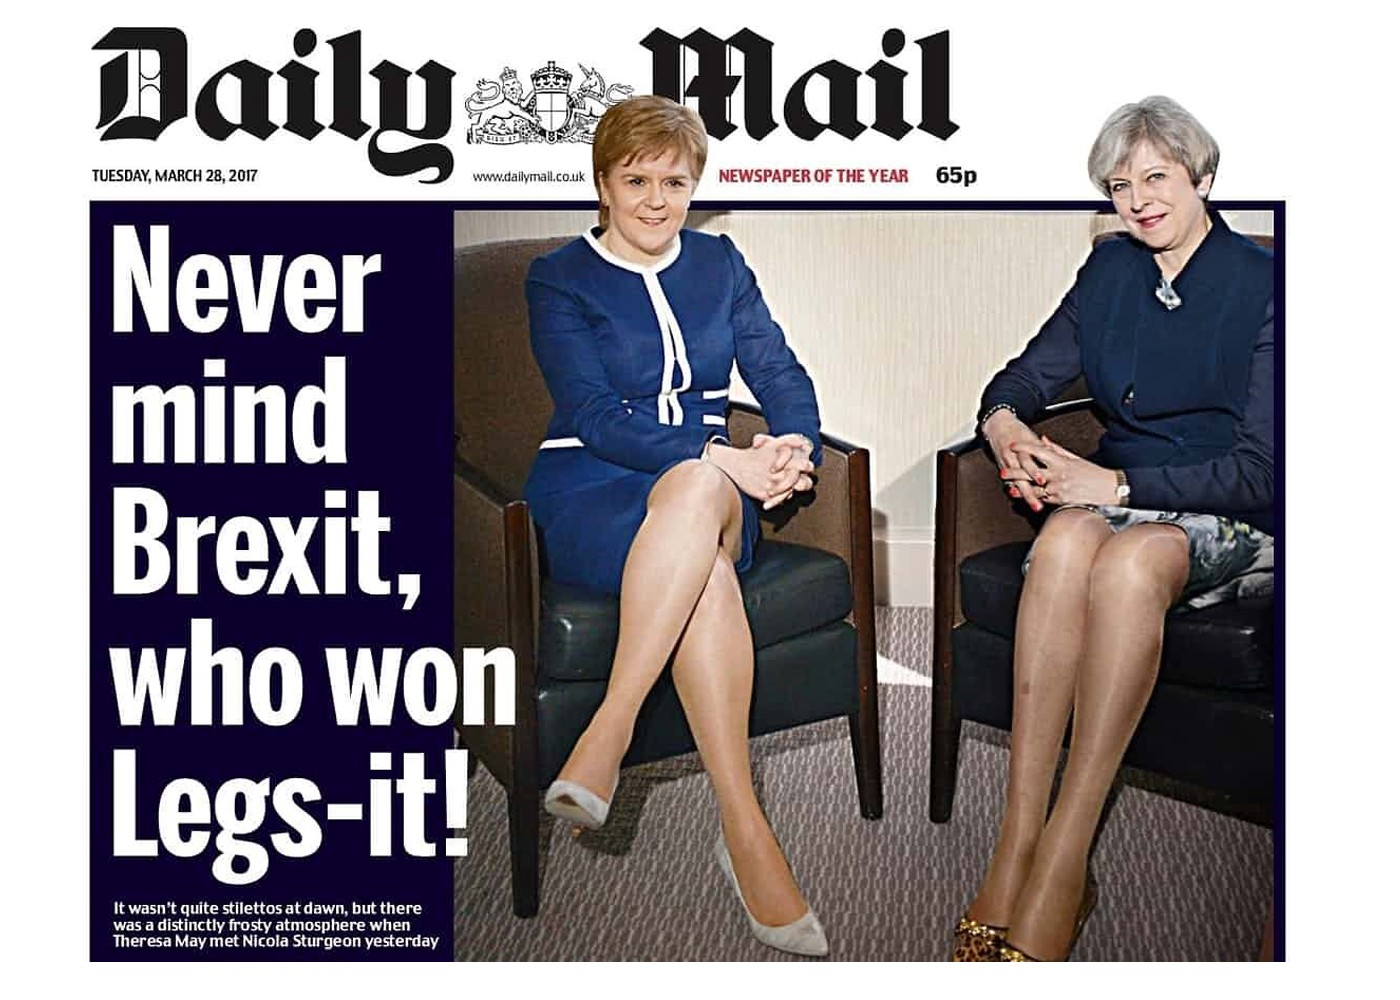 99ef0d5116fd8 In 2017, the Daily Mail reported not on Brexit talks, but on the legs of  the UK's two most senior politicians. Image credit: Daily Mail.